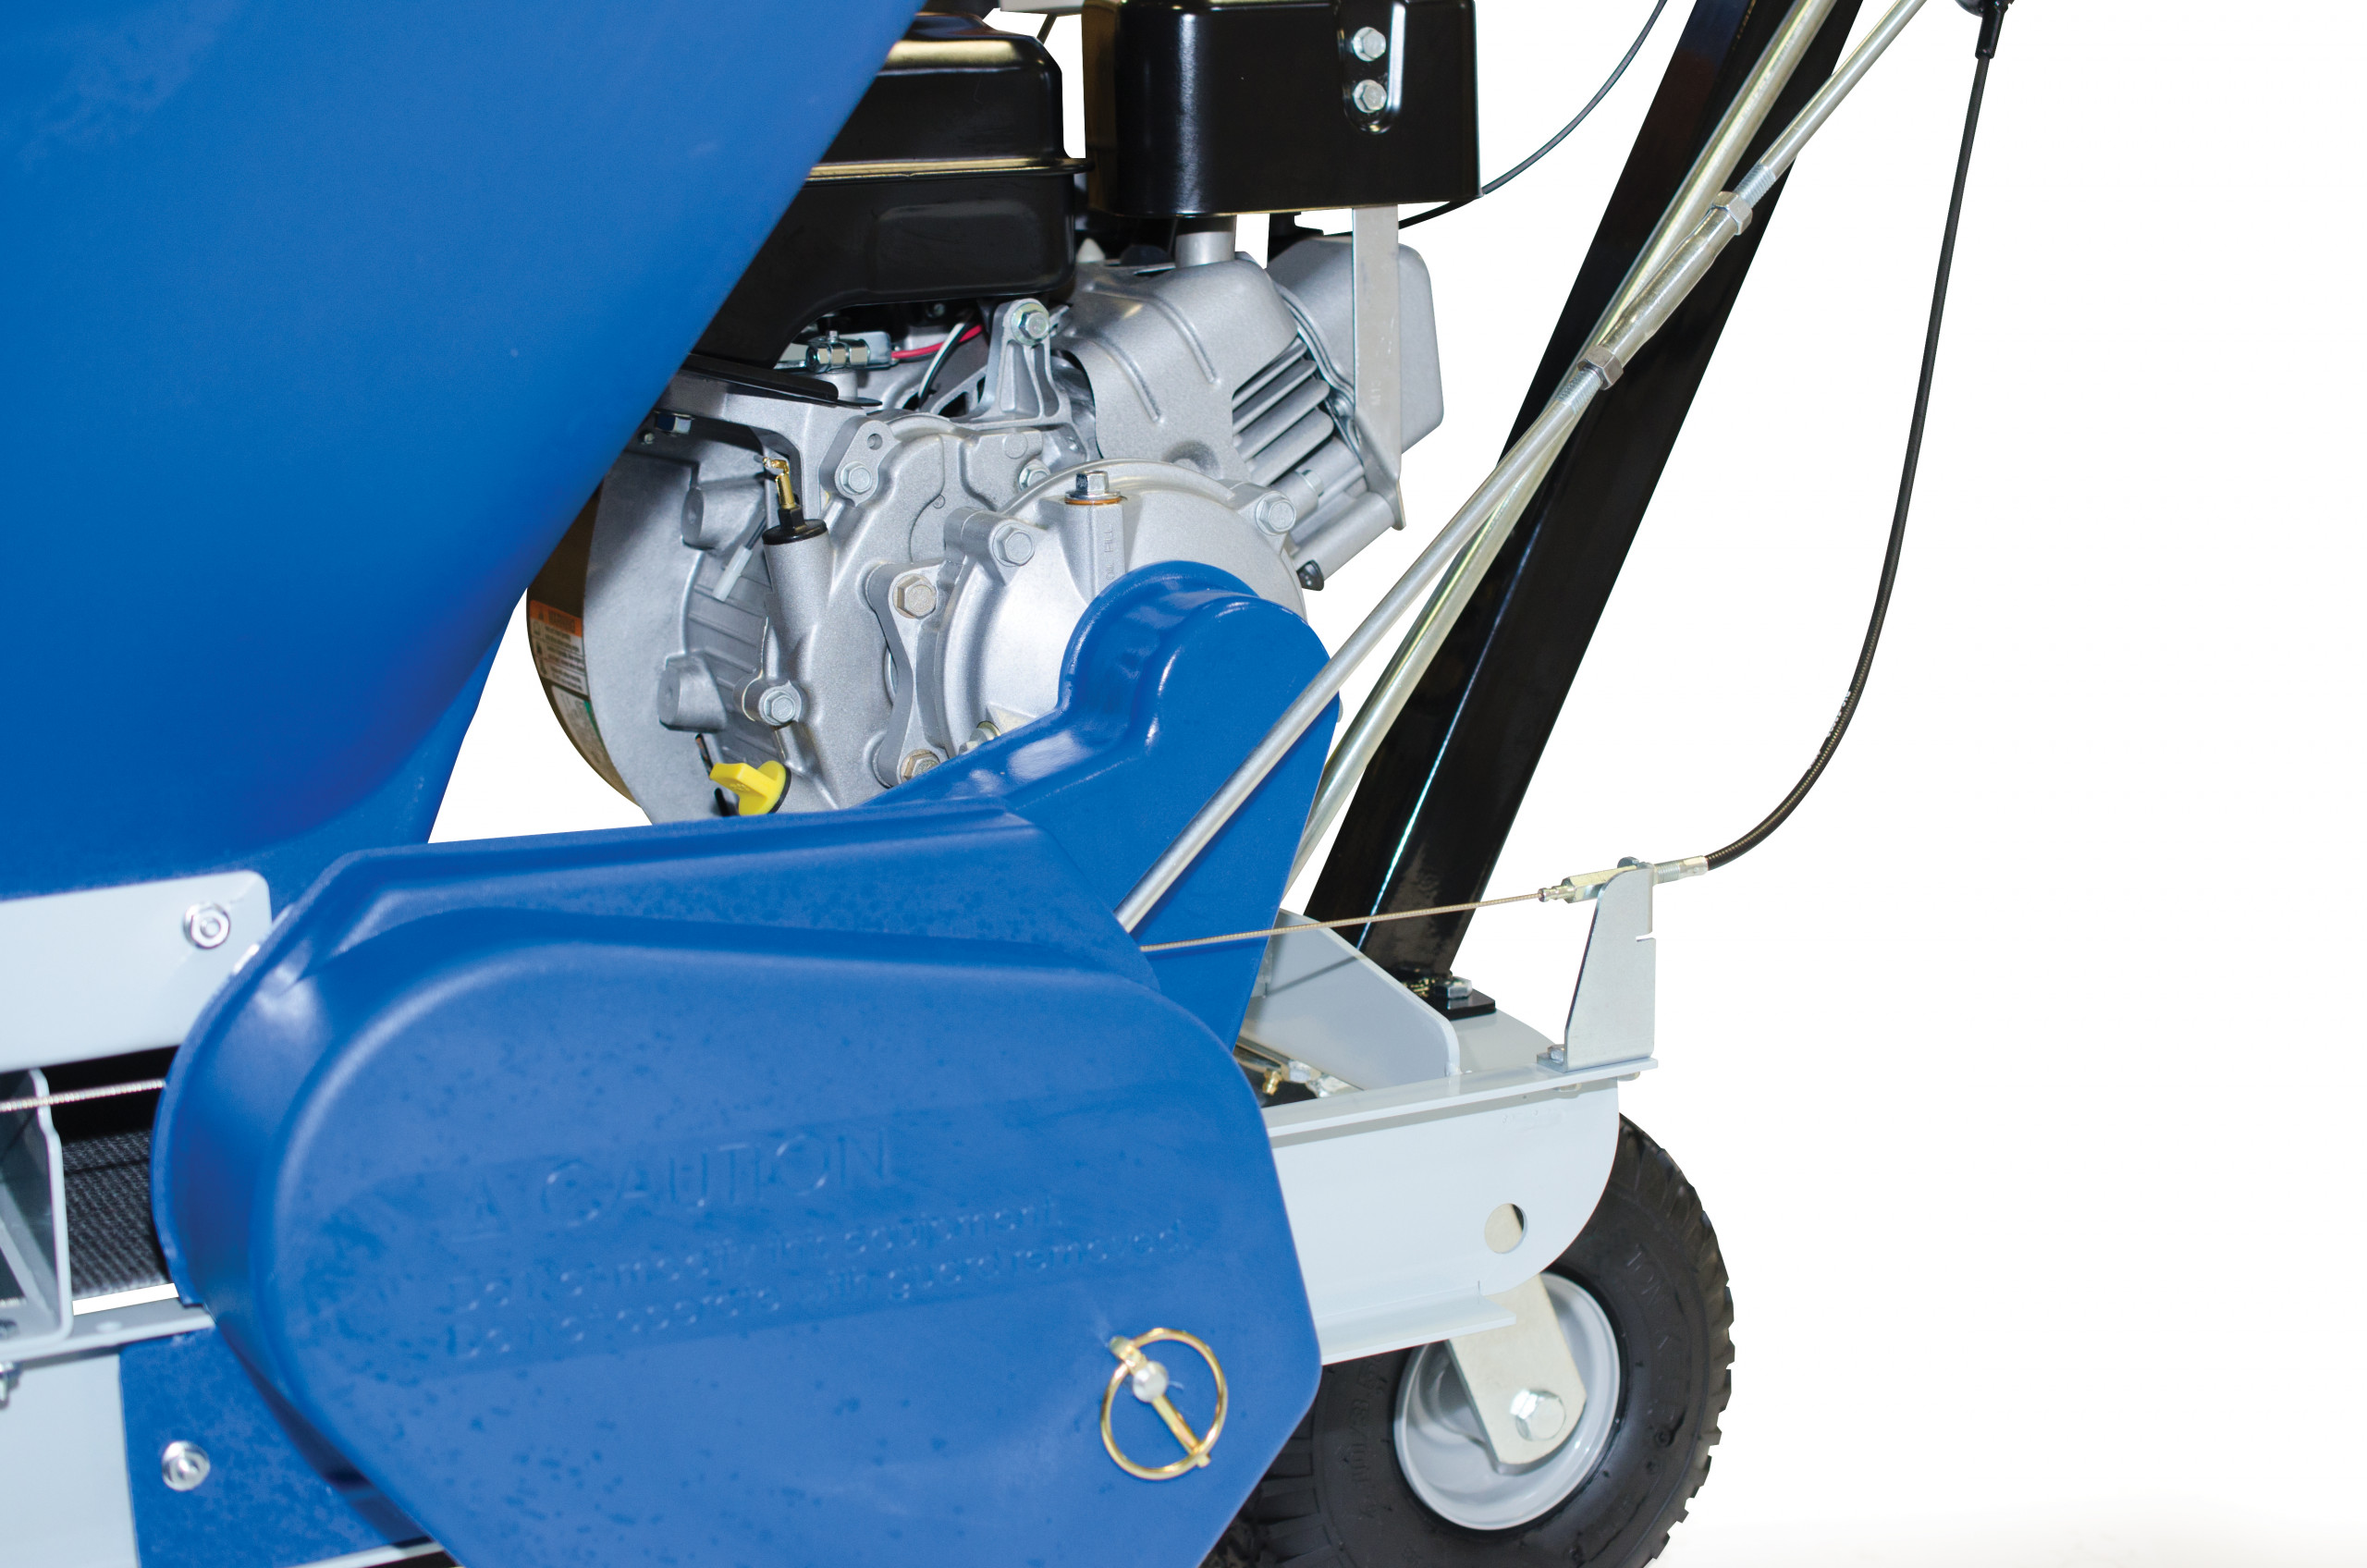 ECO 150 fine-tuning flap adj with clutch side view